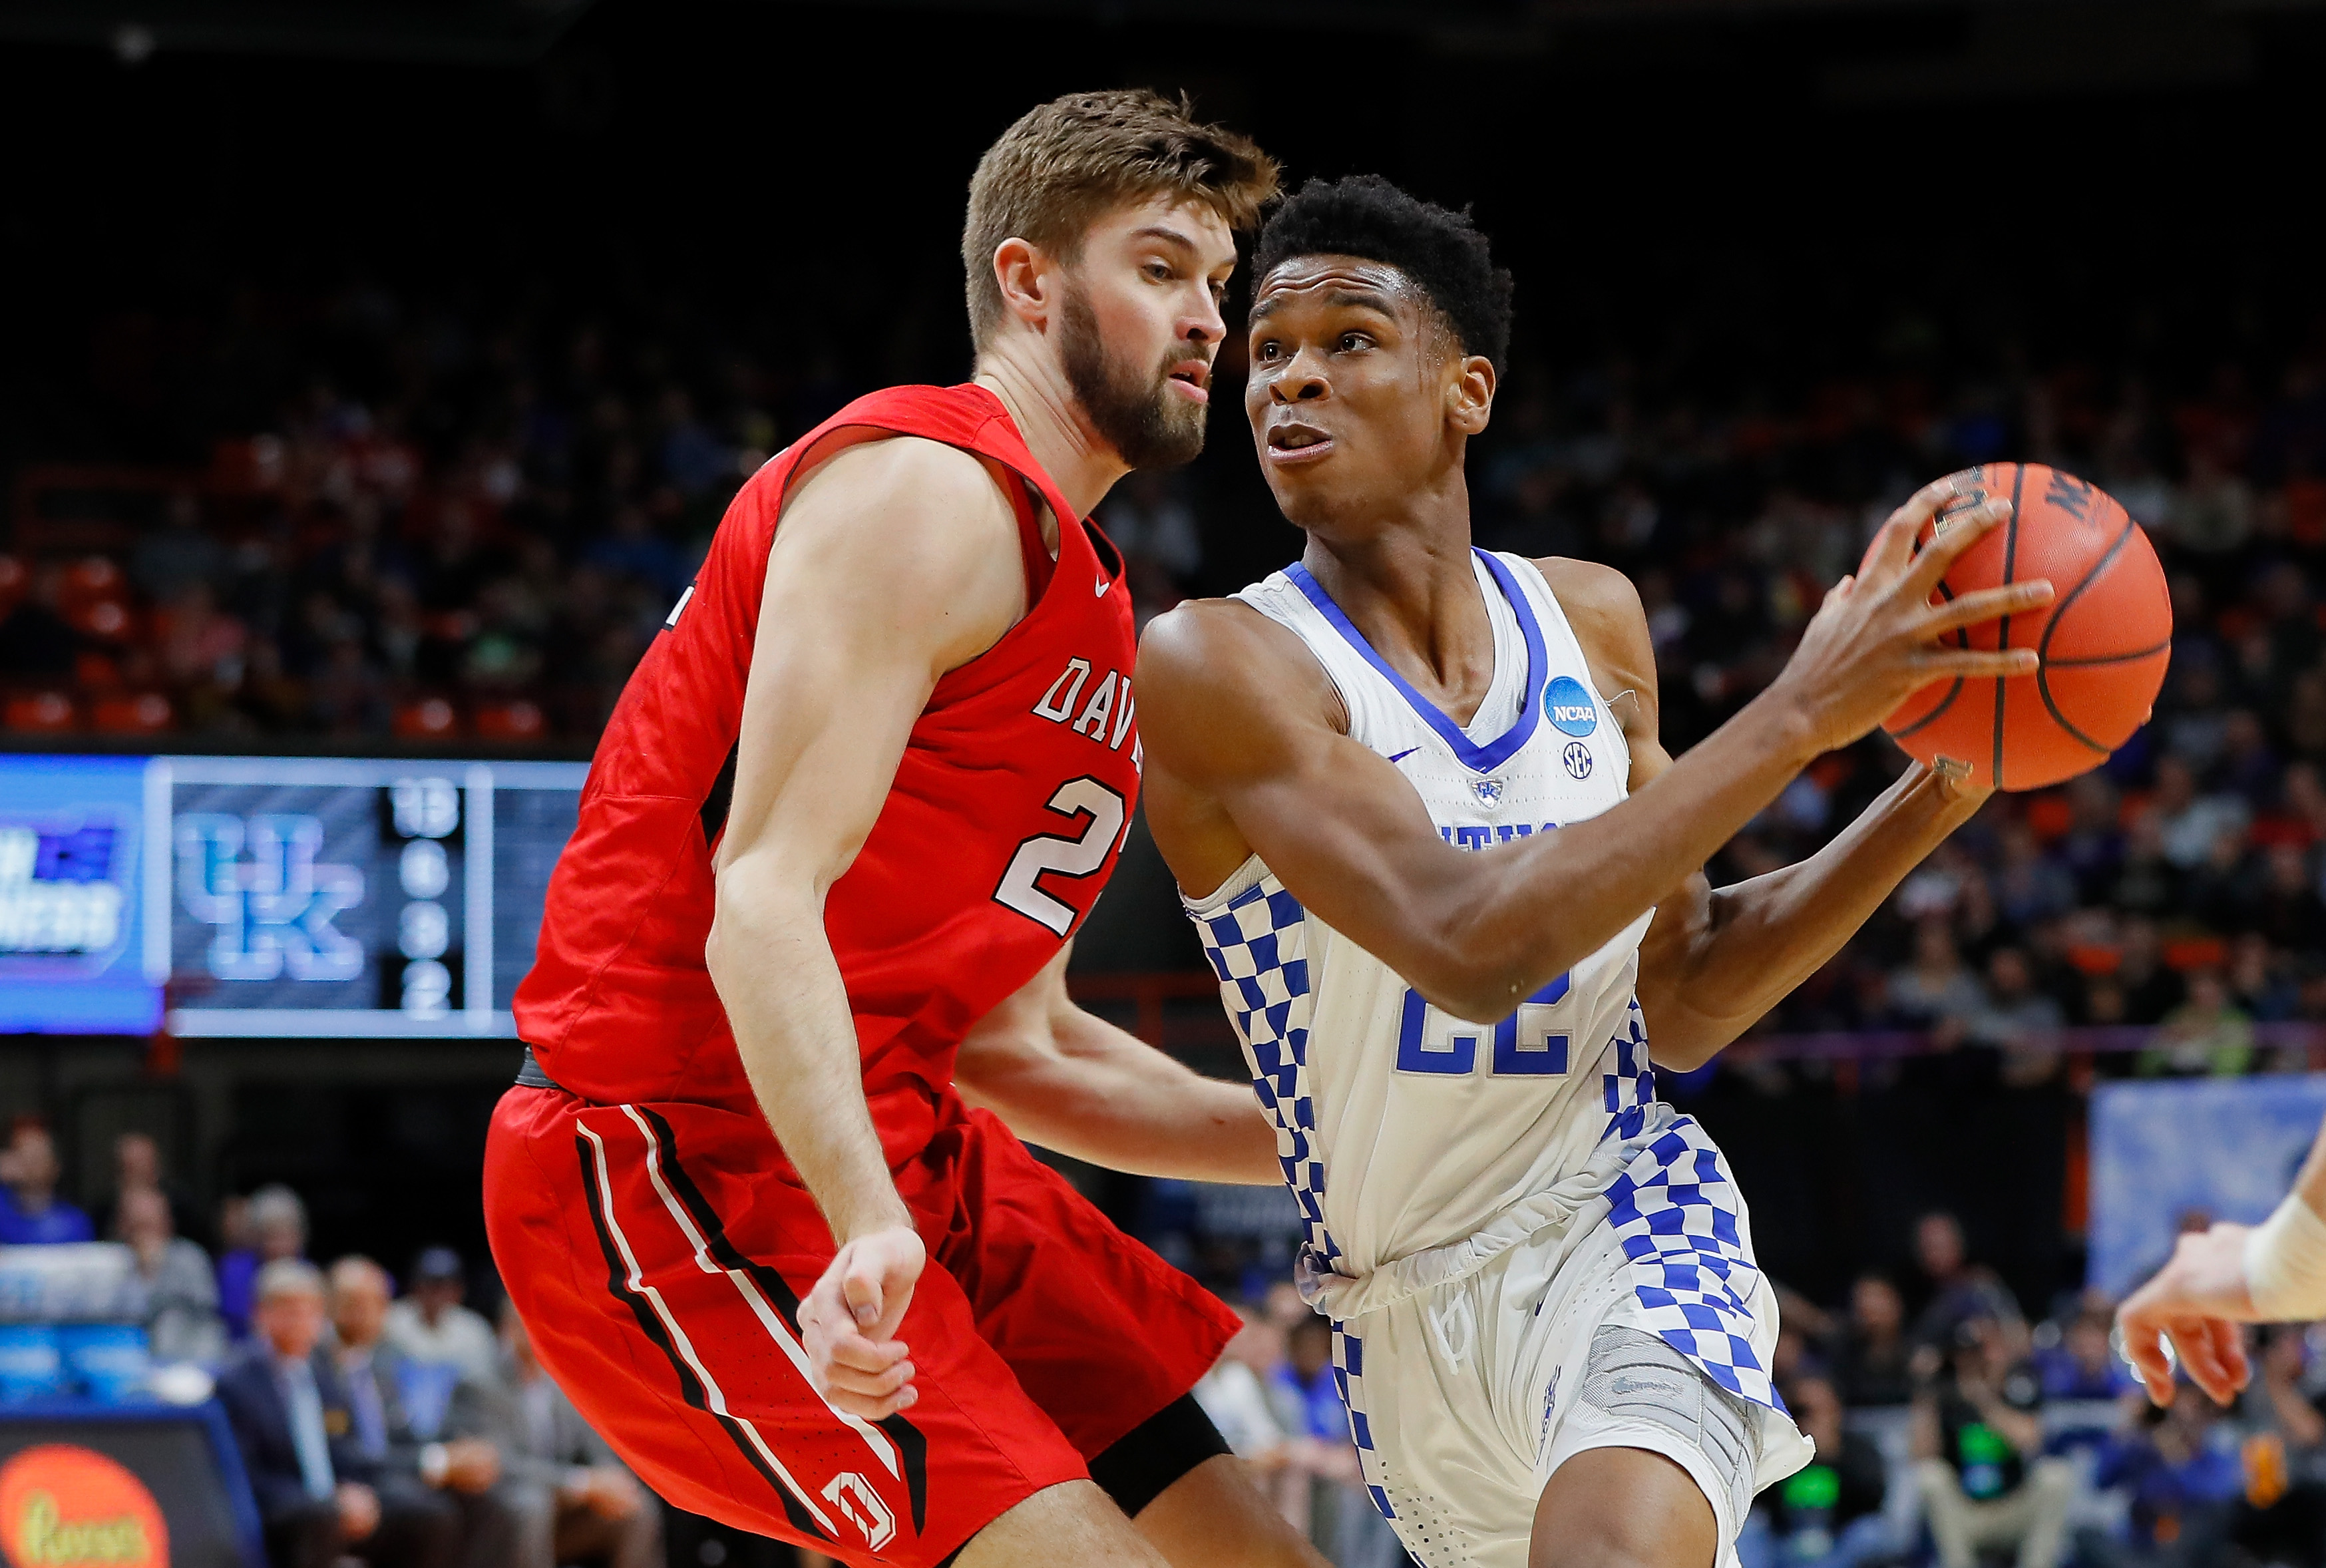 Baby Cats: Even for Cal and Kentucky, this team is young